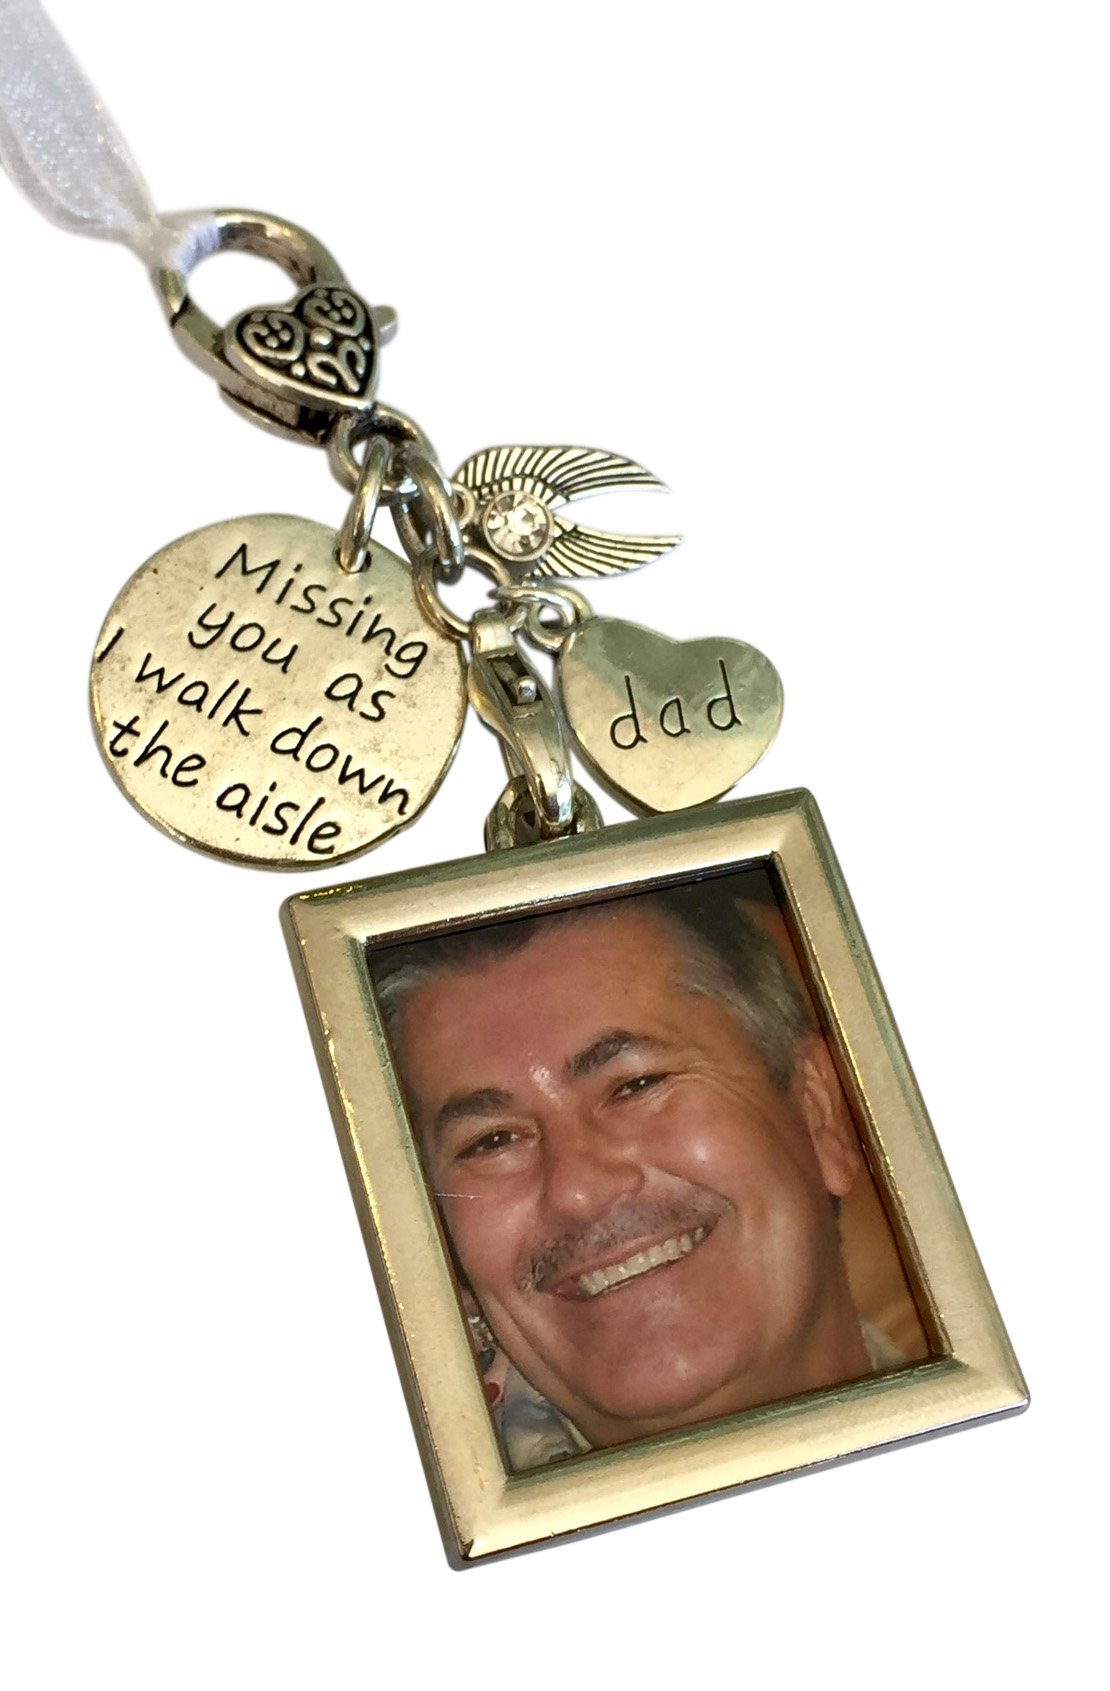 Harper Olivia Bridal Bouquet Photo Charm Missing You As I Walk Down The Aisle Wedding Memorial Gift for Dad